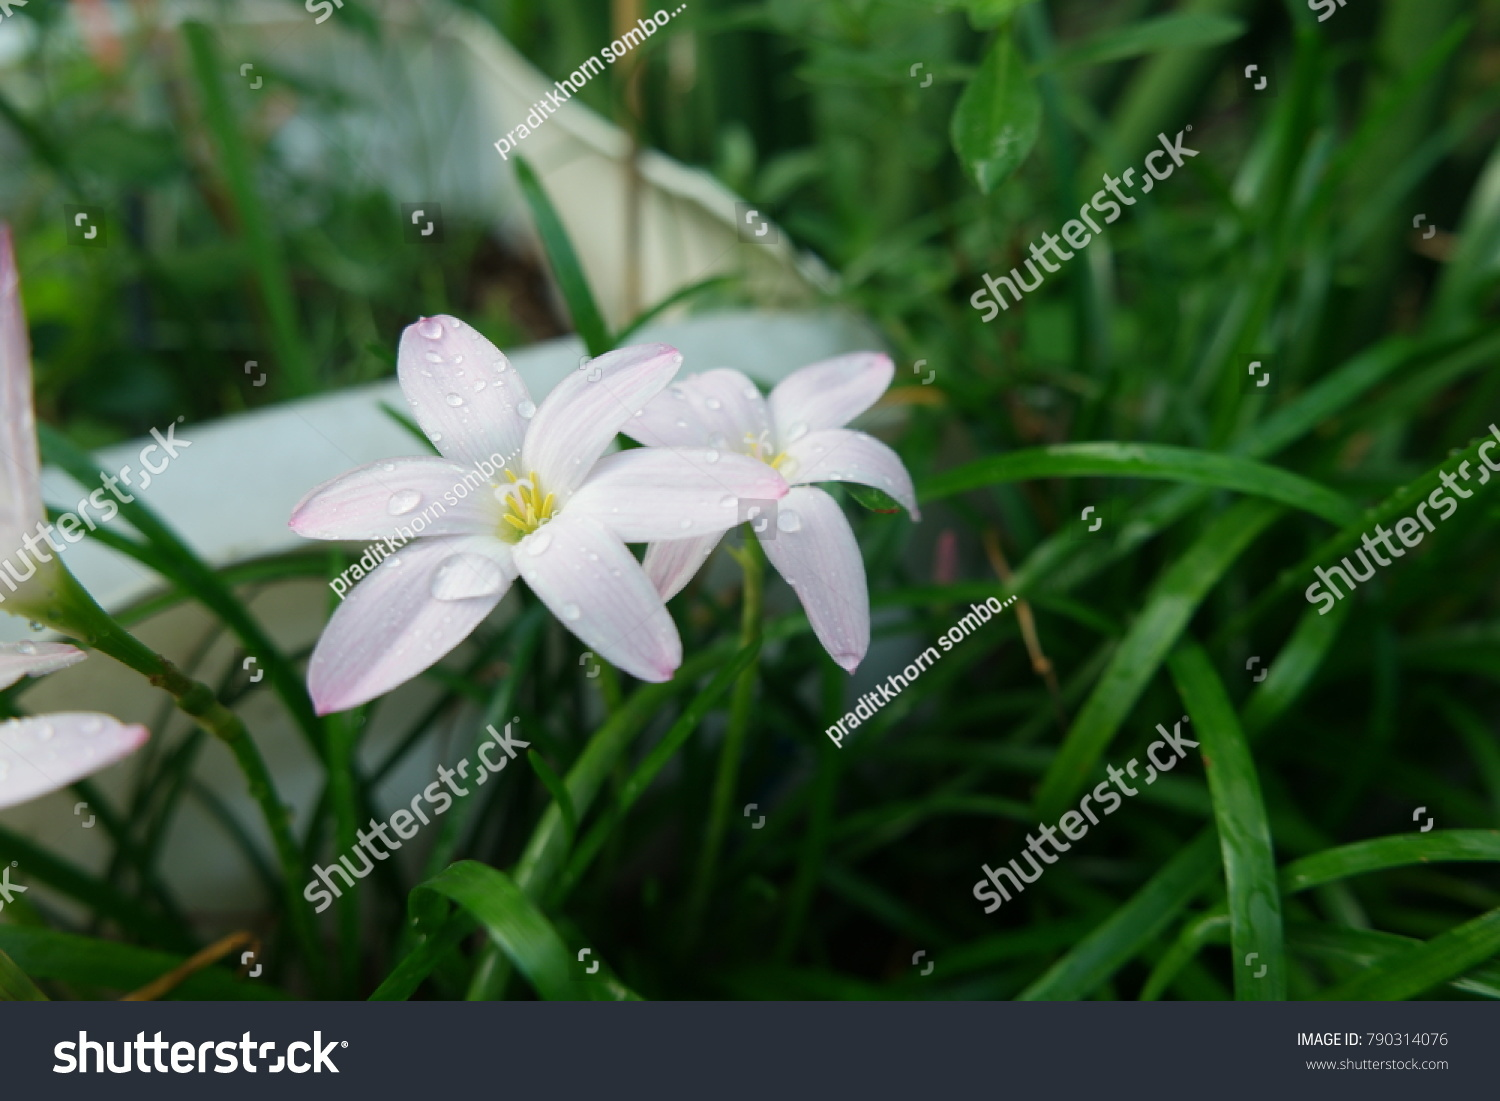 Rain Lily Flower Blooming Nature Garden Stock Photo Royalty Free